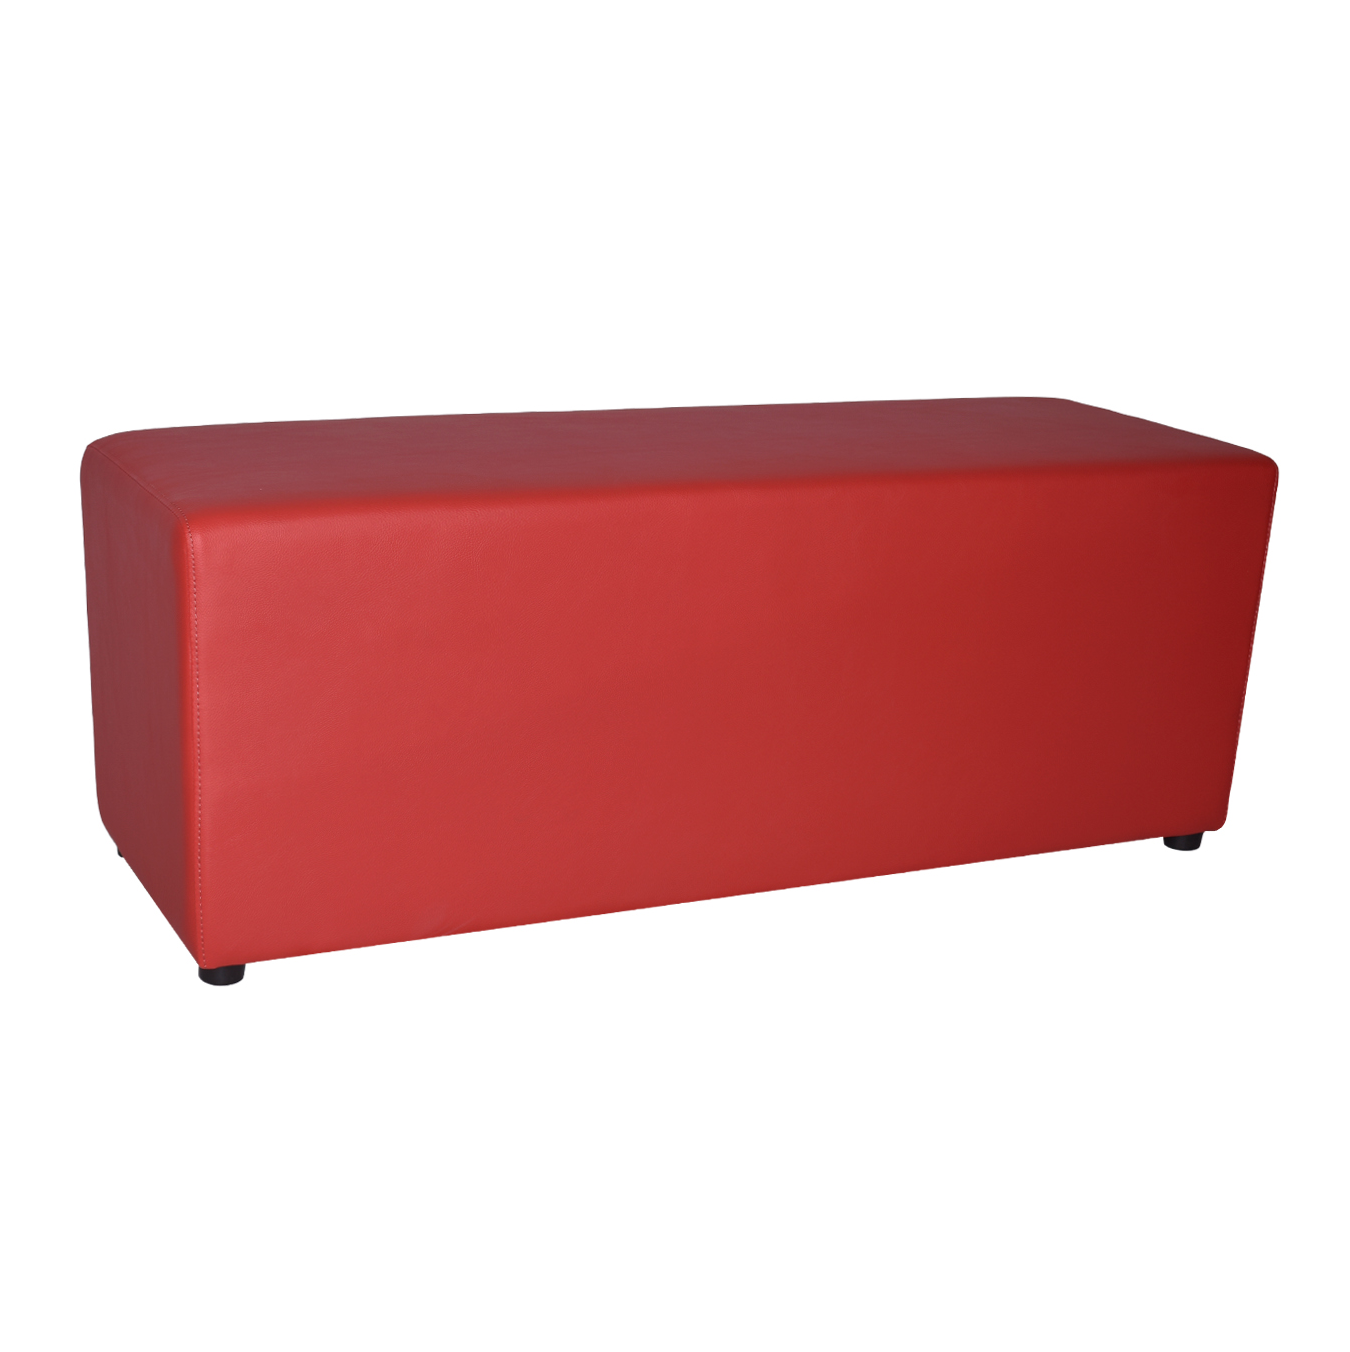 Paletti Rectangle Ottoman